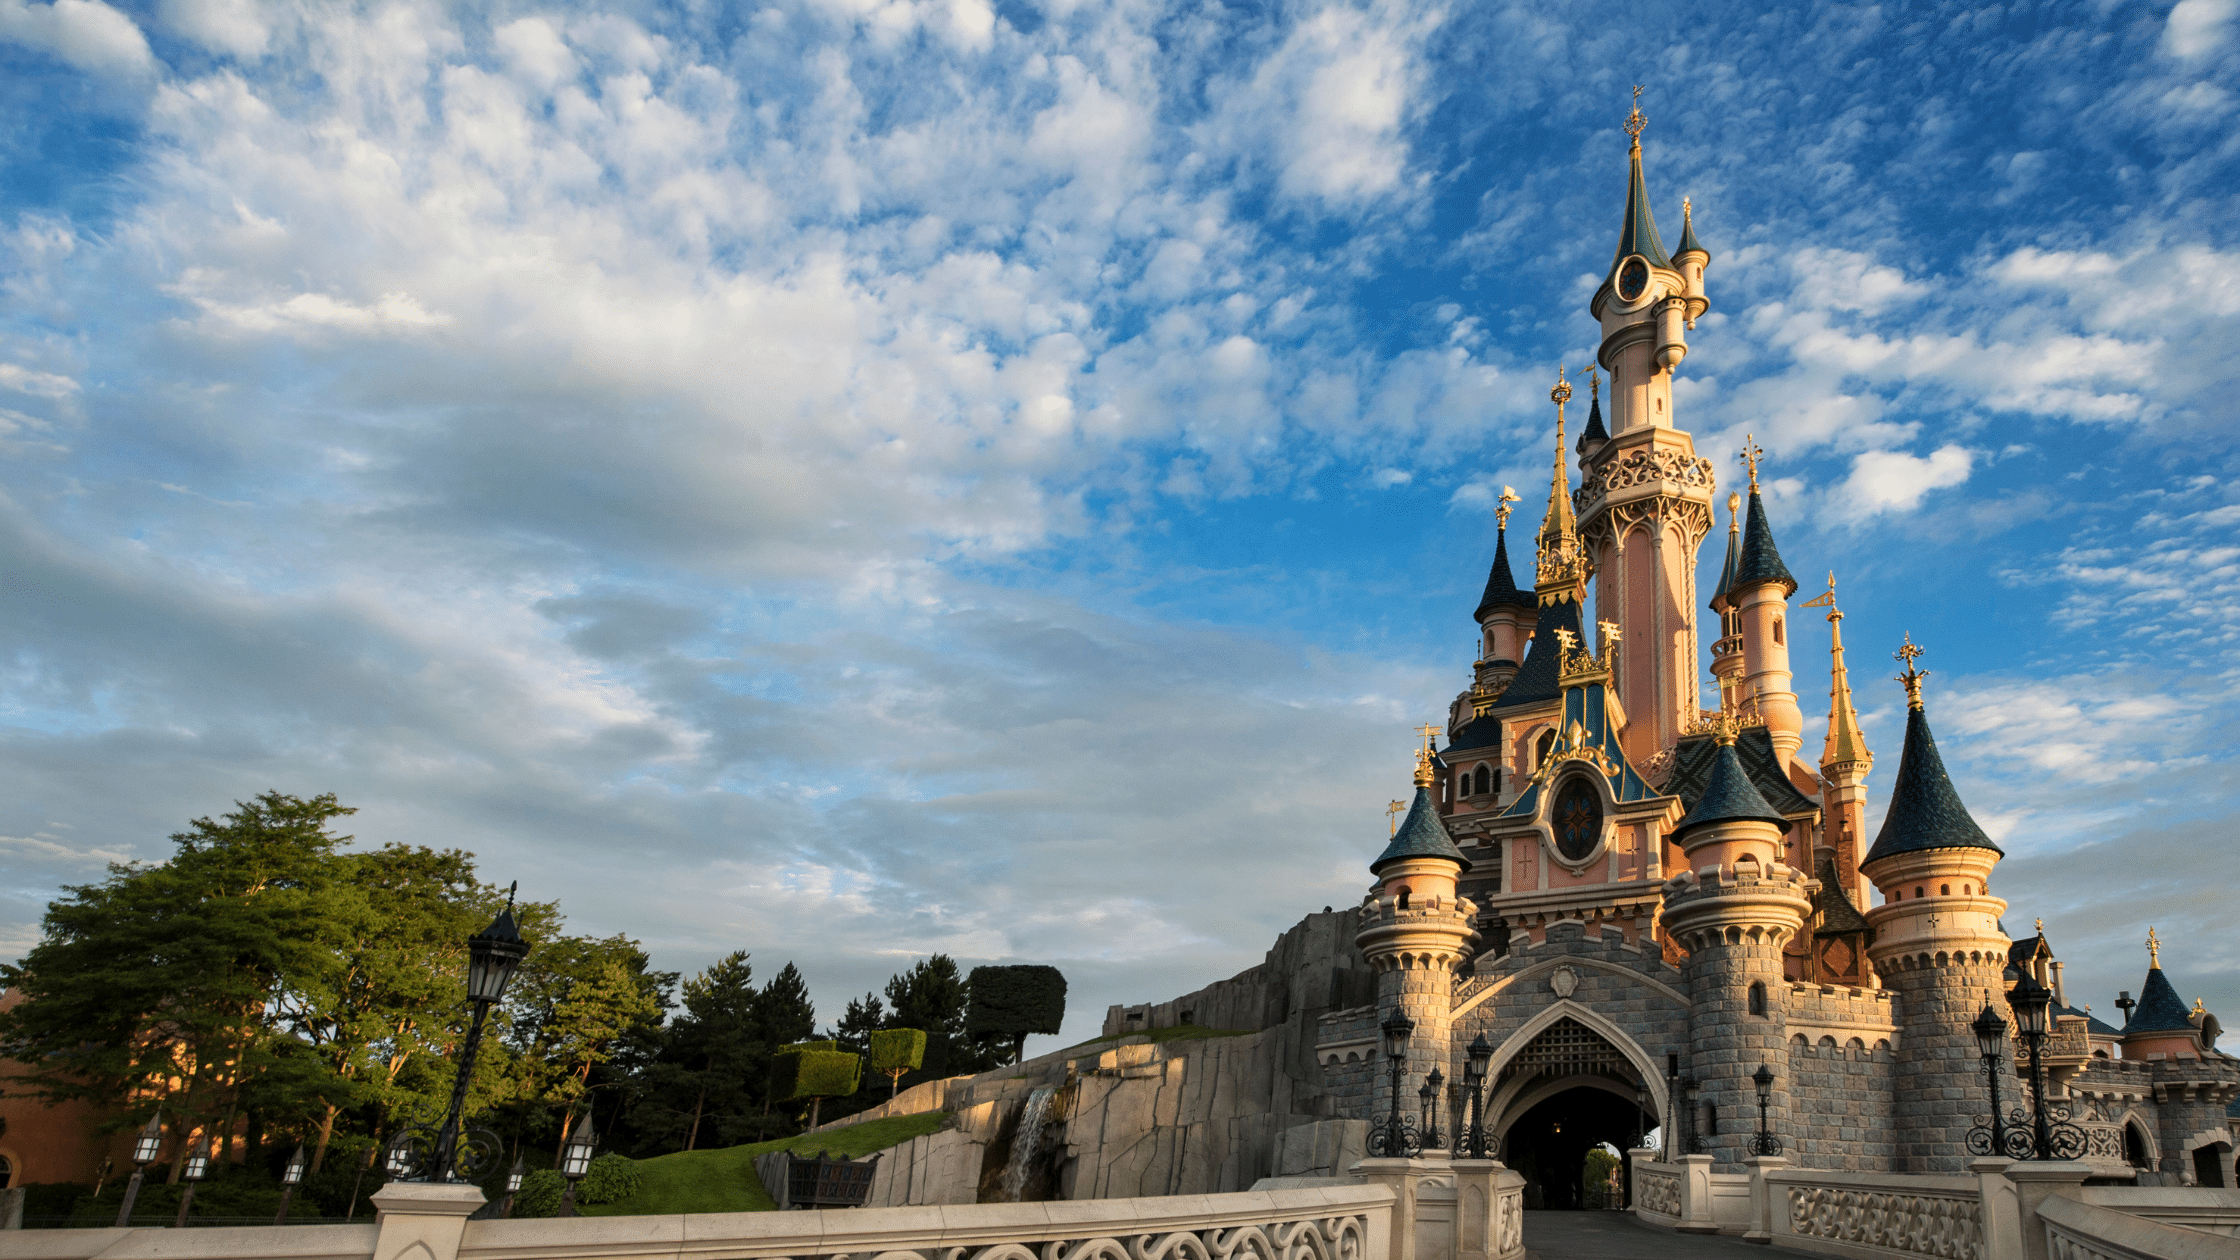 Take an unforgettable trip to Disneyland Paris with Icon Travel